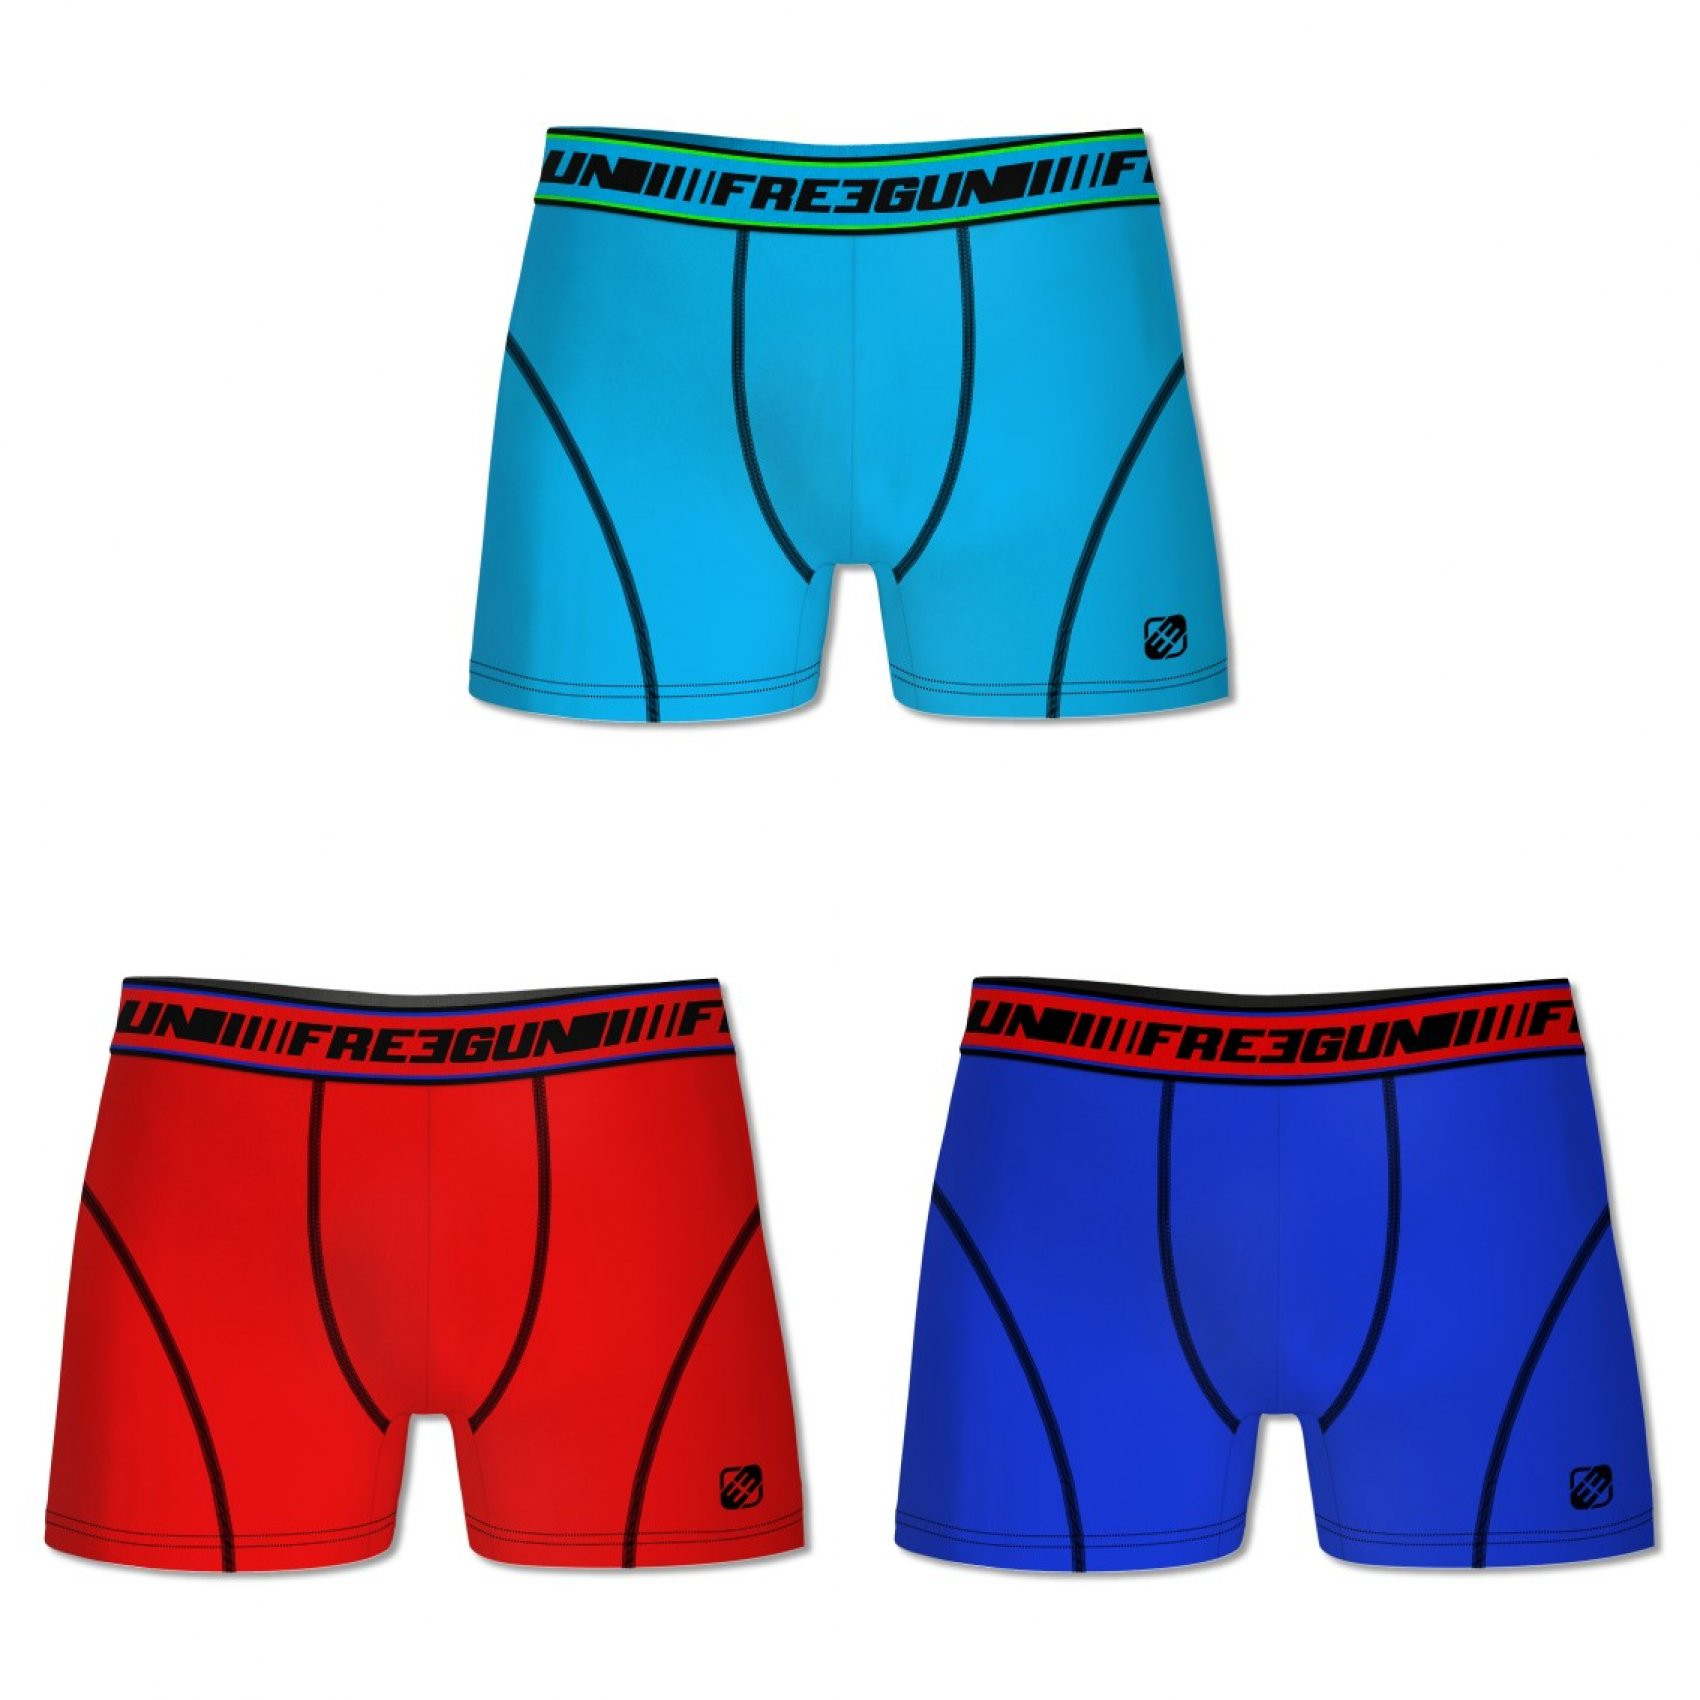 Lot de 3 boxers coton homme clim multicolore (photo)